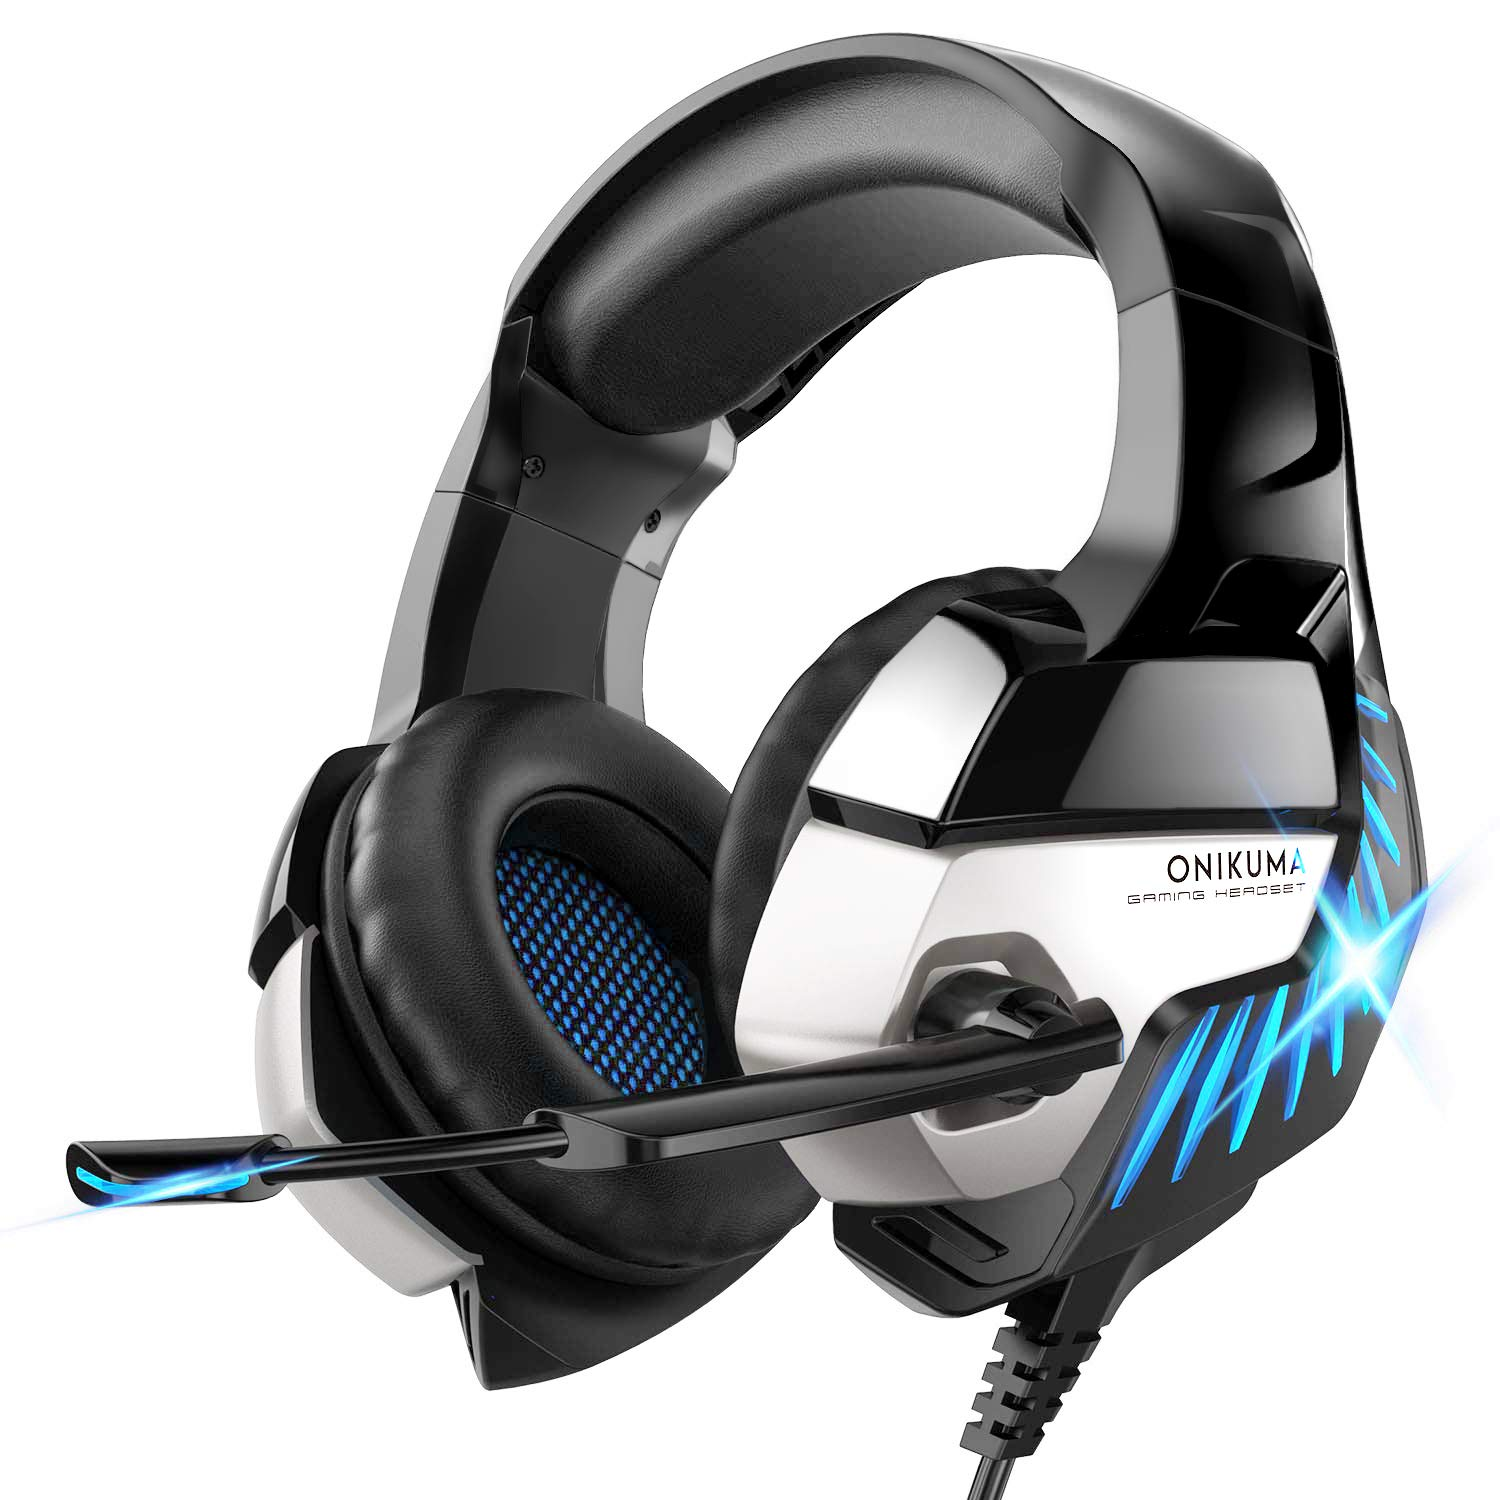 Gaming Headset for PS4, Xbox One, PC Headphones with Microphone LED Light Mic for Nintendo Switch Playstation Computer, K5 pro (Black&Blue) by Nivava